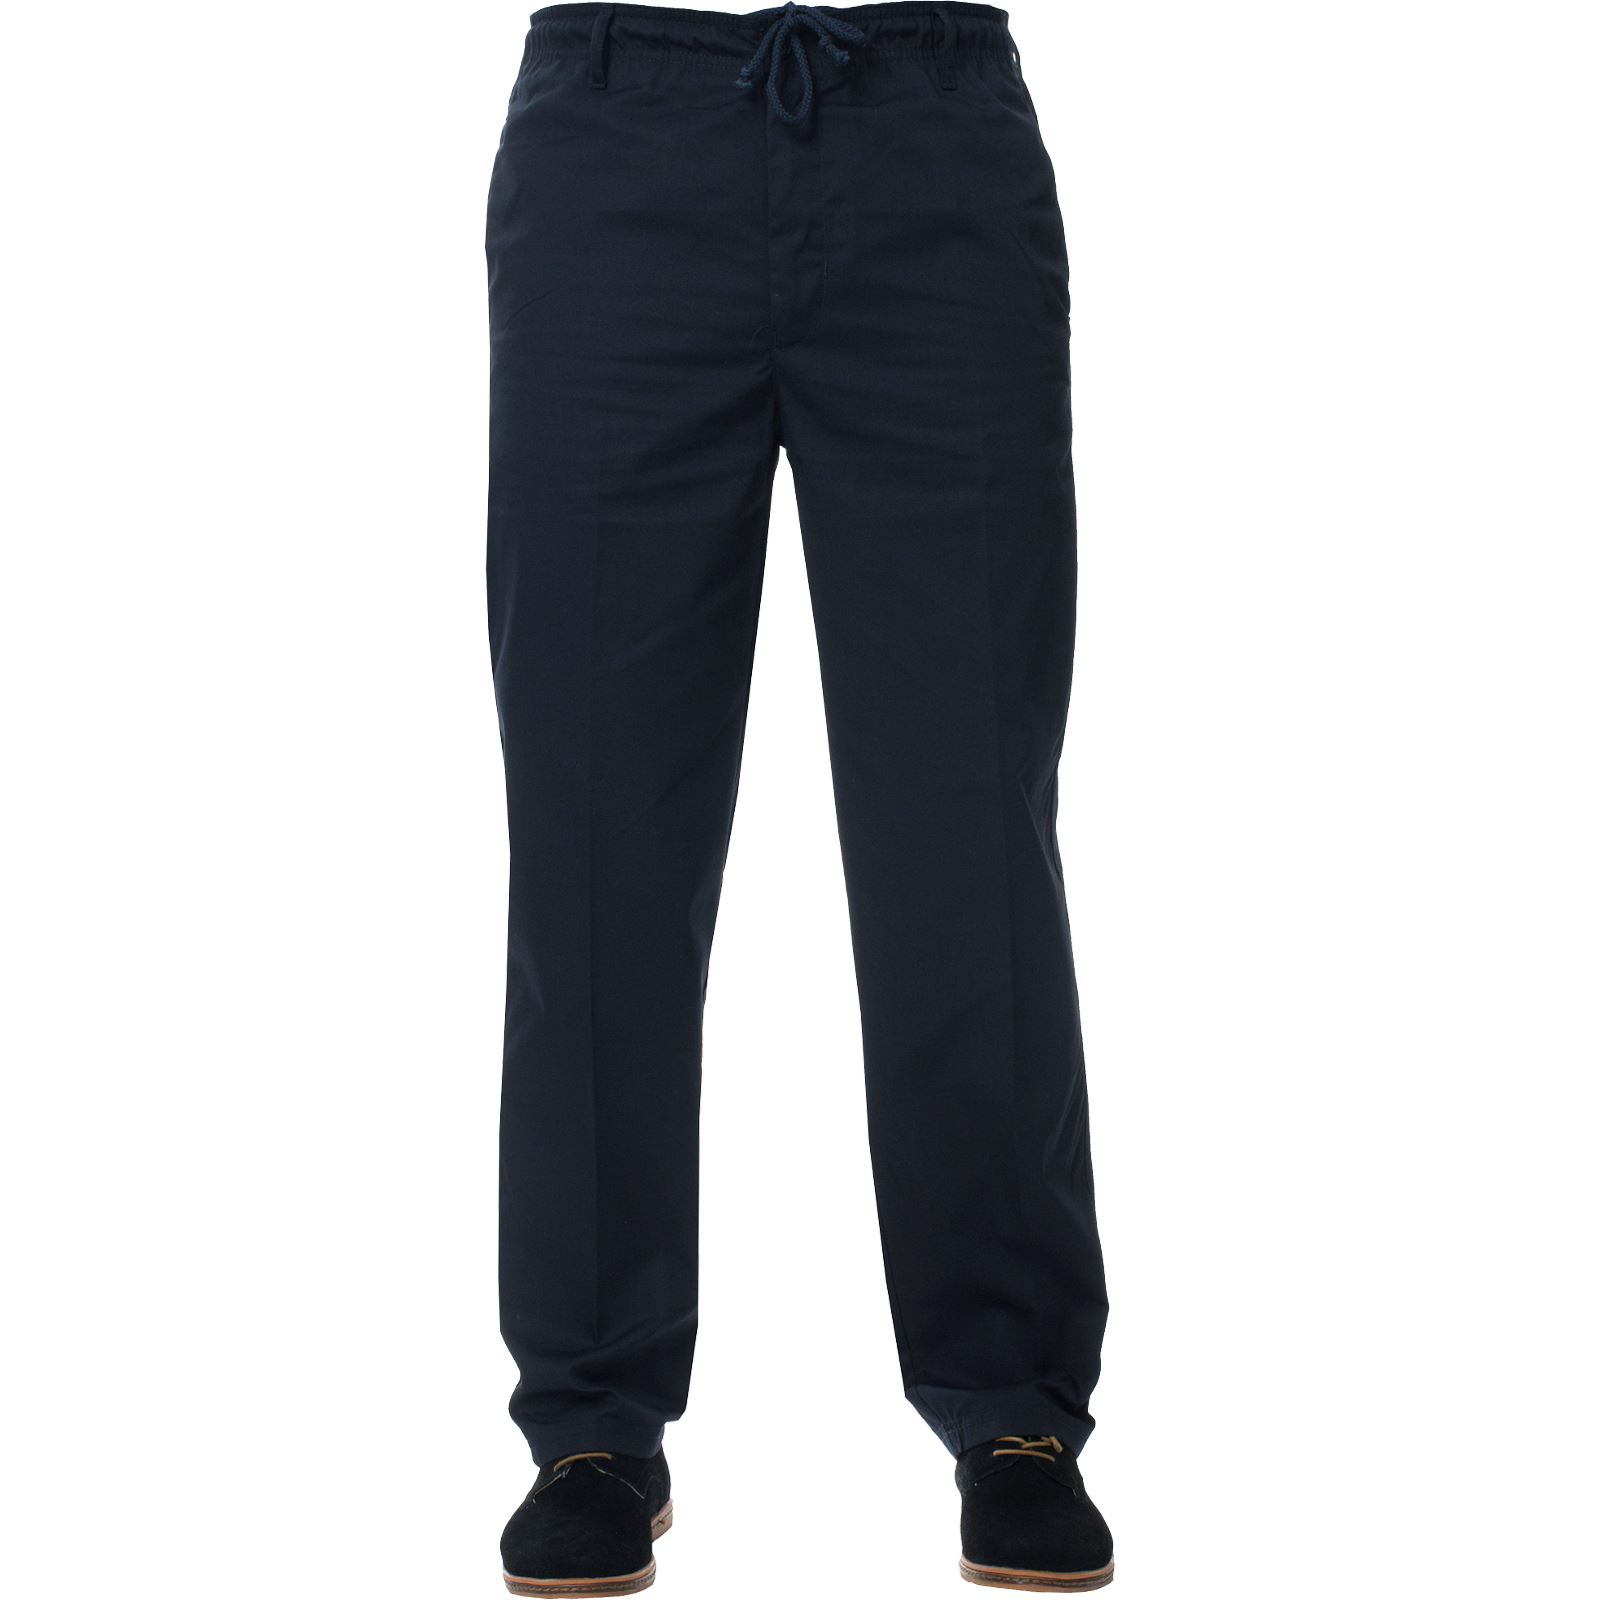 Mens-Rugby-Trousers-Kruze-Elasticated-Waist-Drawstring-Pants-Regular-King-Sizes thumbnail 8